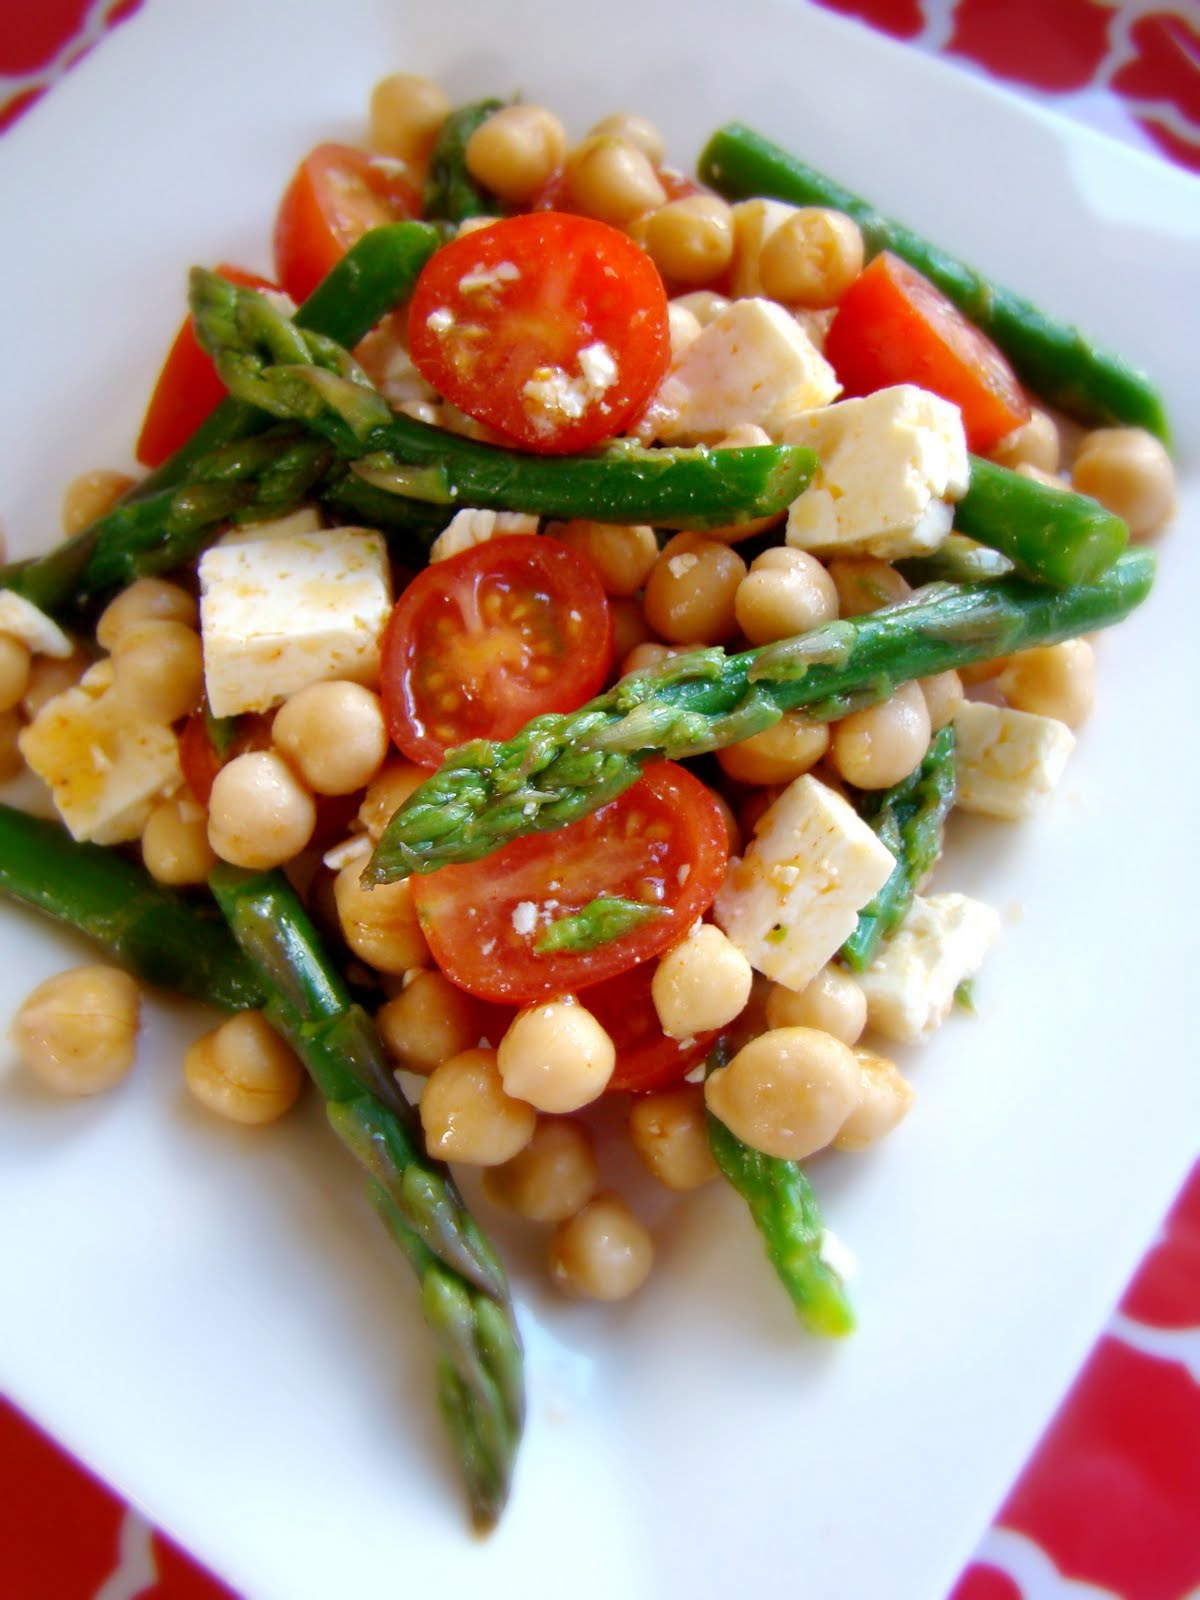 Family Feedbag: Chipotle chickpea salad